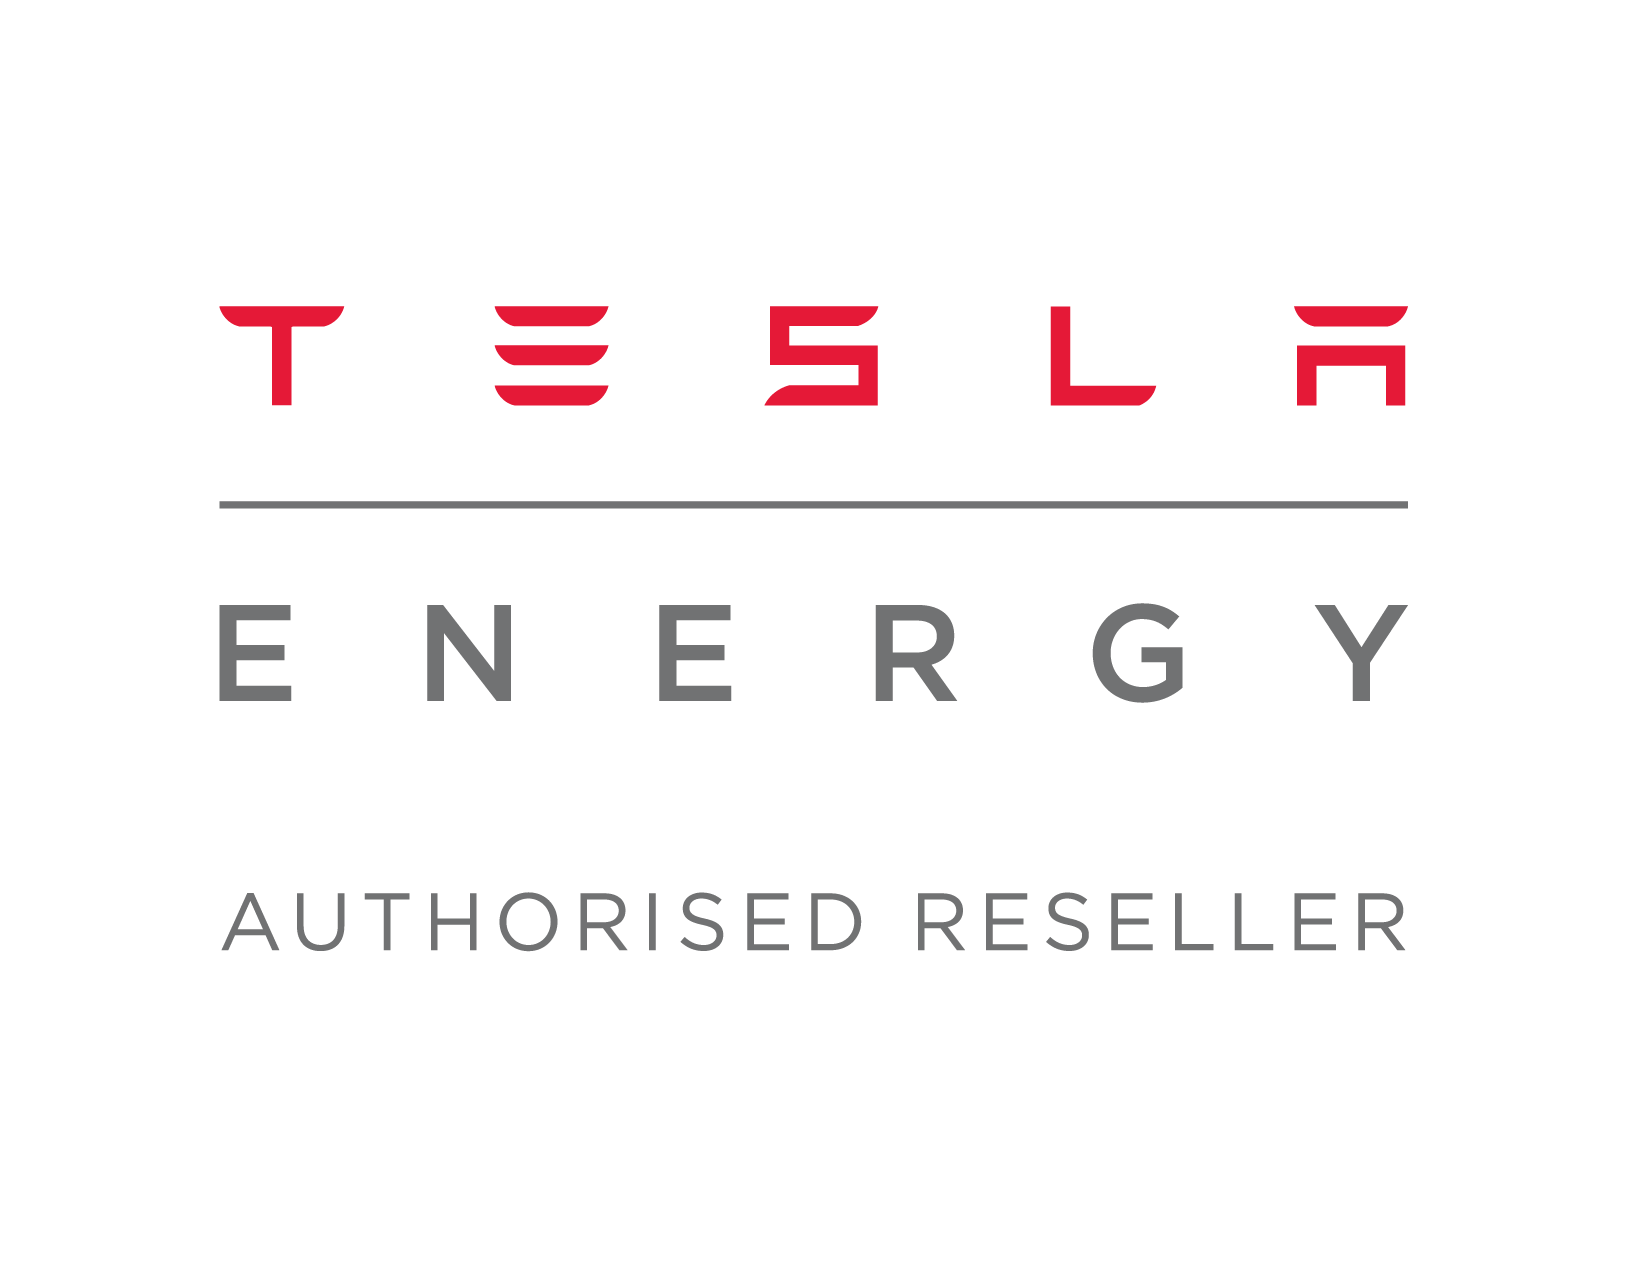 Tesla Energy Authorised Reseller